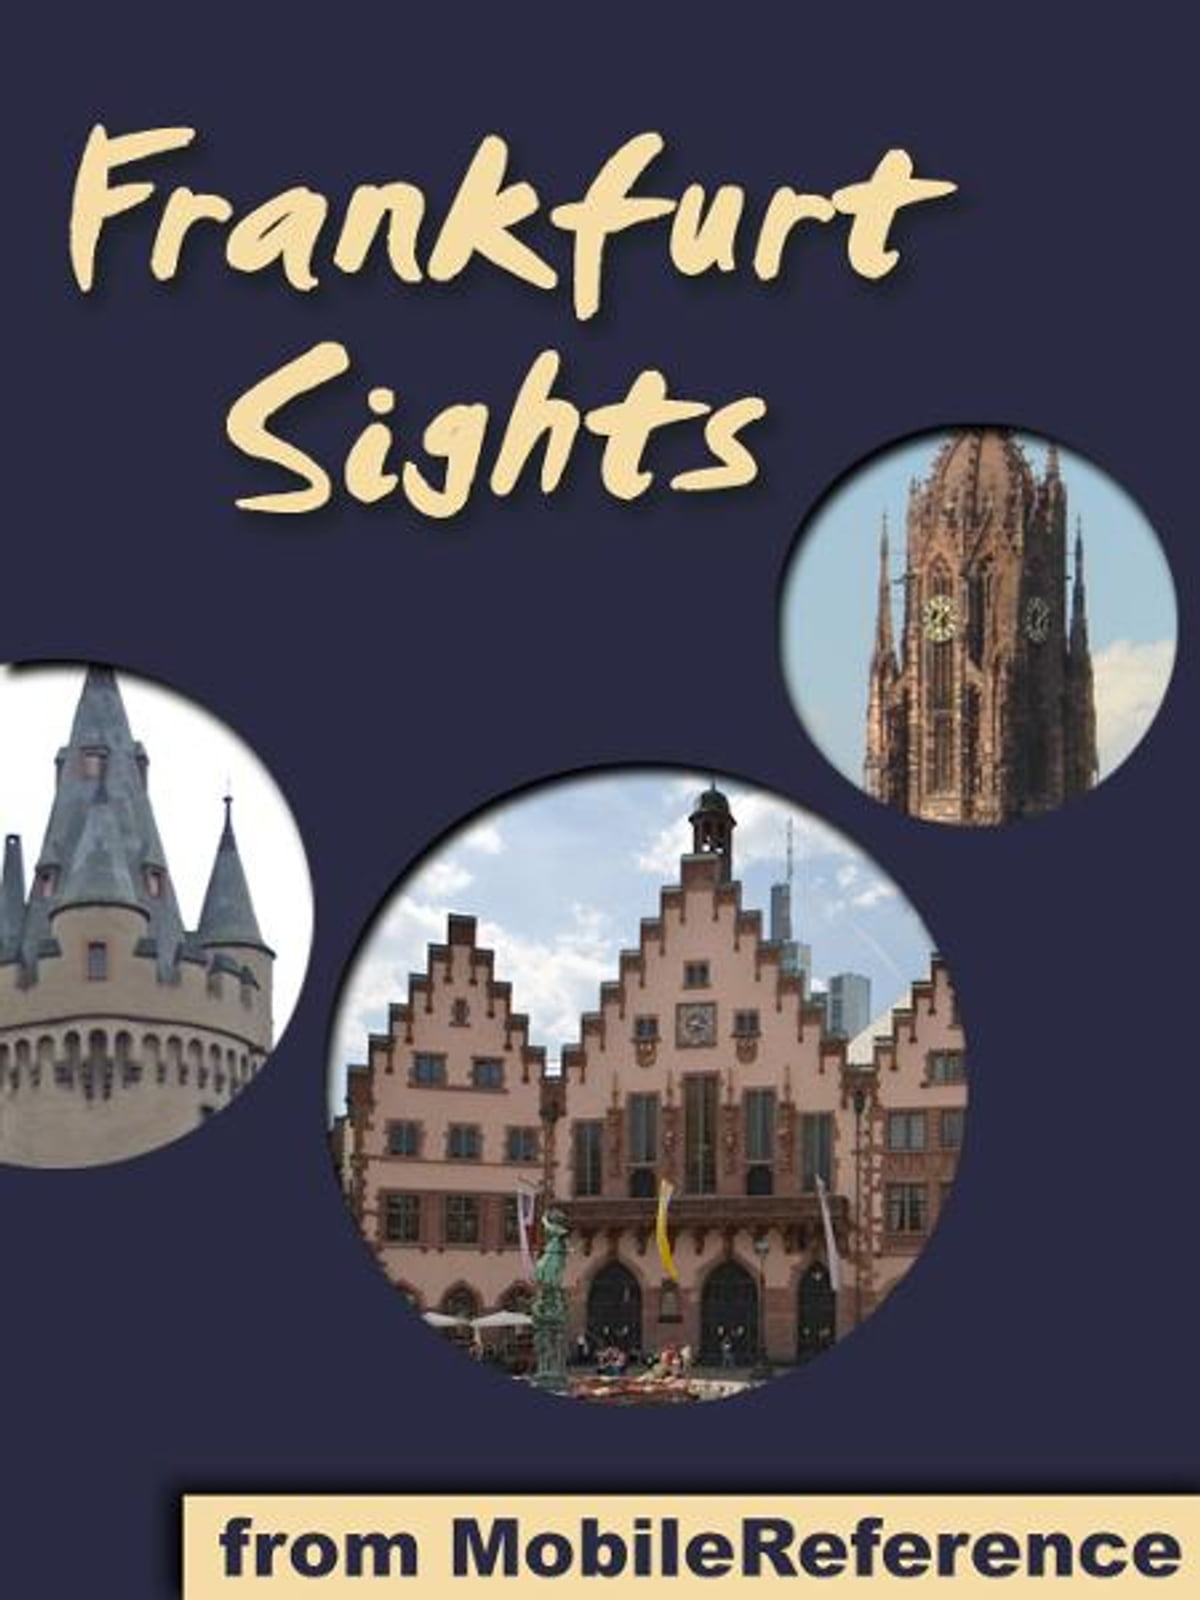 Frankfurt Sights: a travel guide to the top attractions in Frankfurt am  Main, Germany (Mobi Sights) eBook by MobileReference - 9781611981957 |  Rakuten Kobo